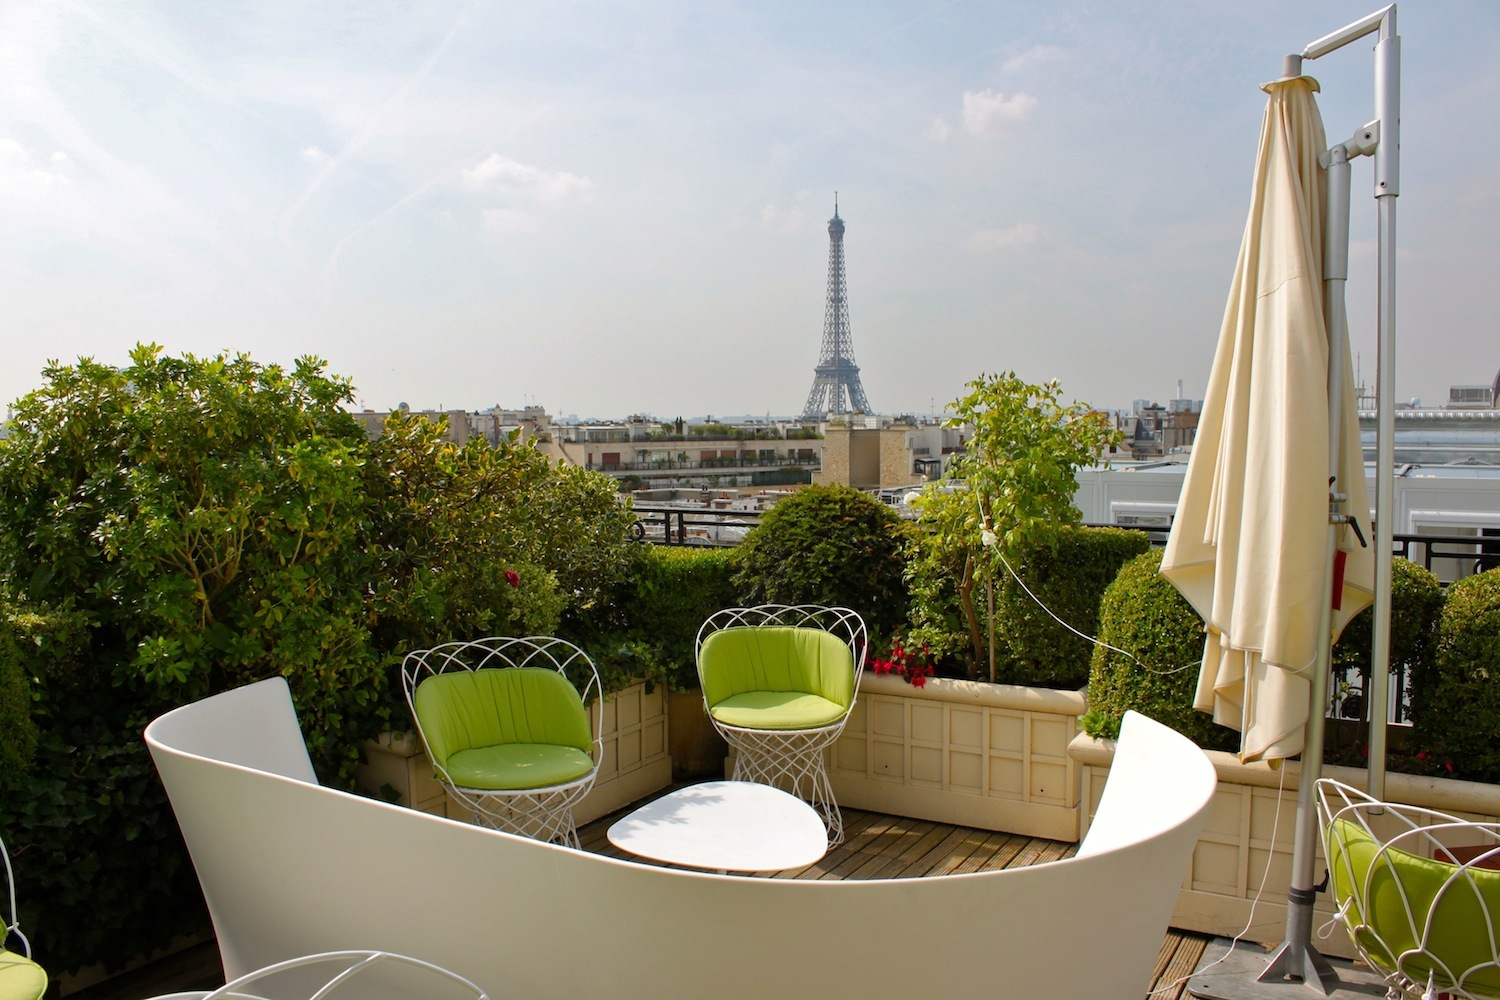 Dejeuner Terrasse Paris The Best Rooftop Bars In Paris Bars And Restaurants Time